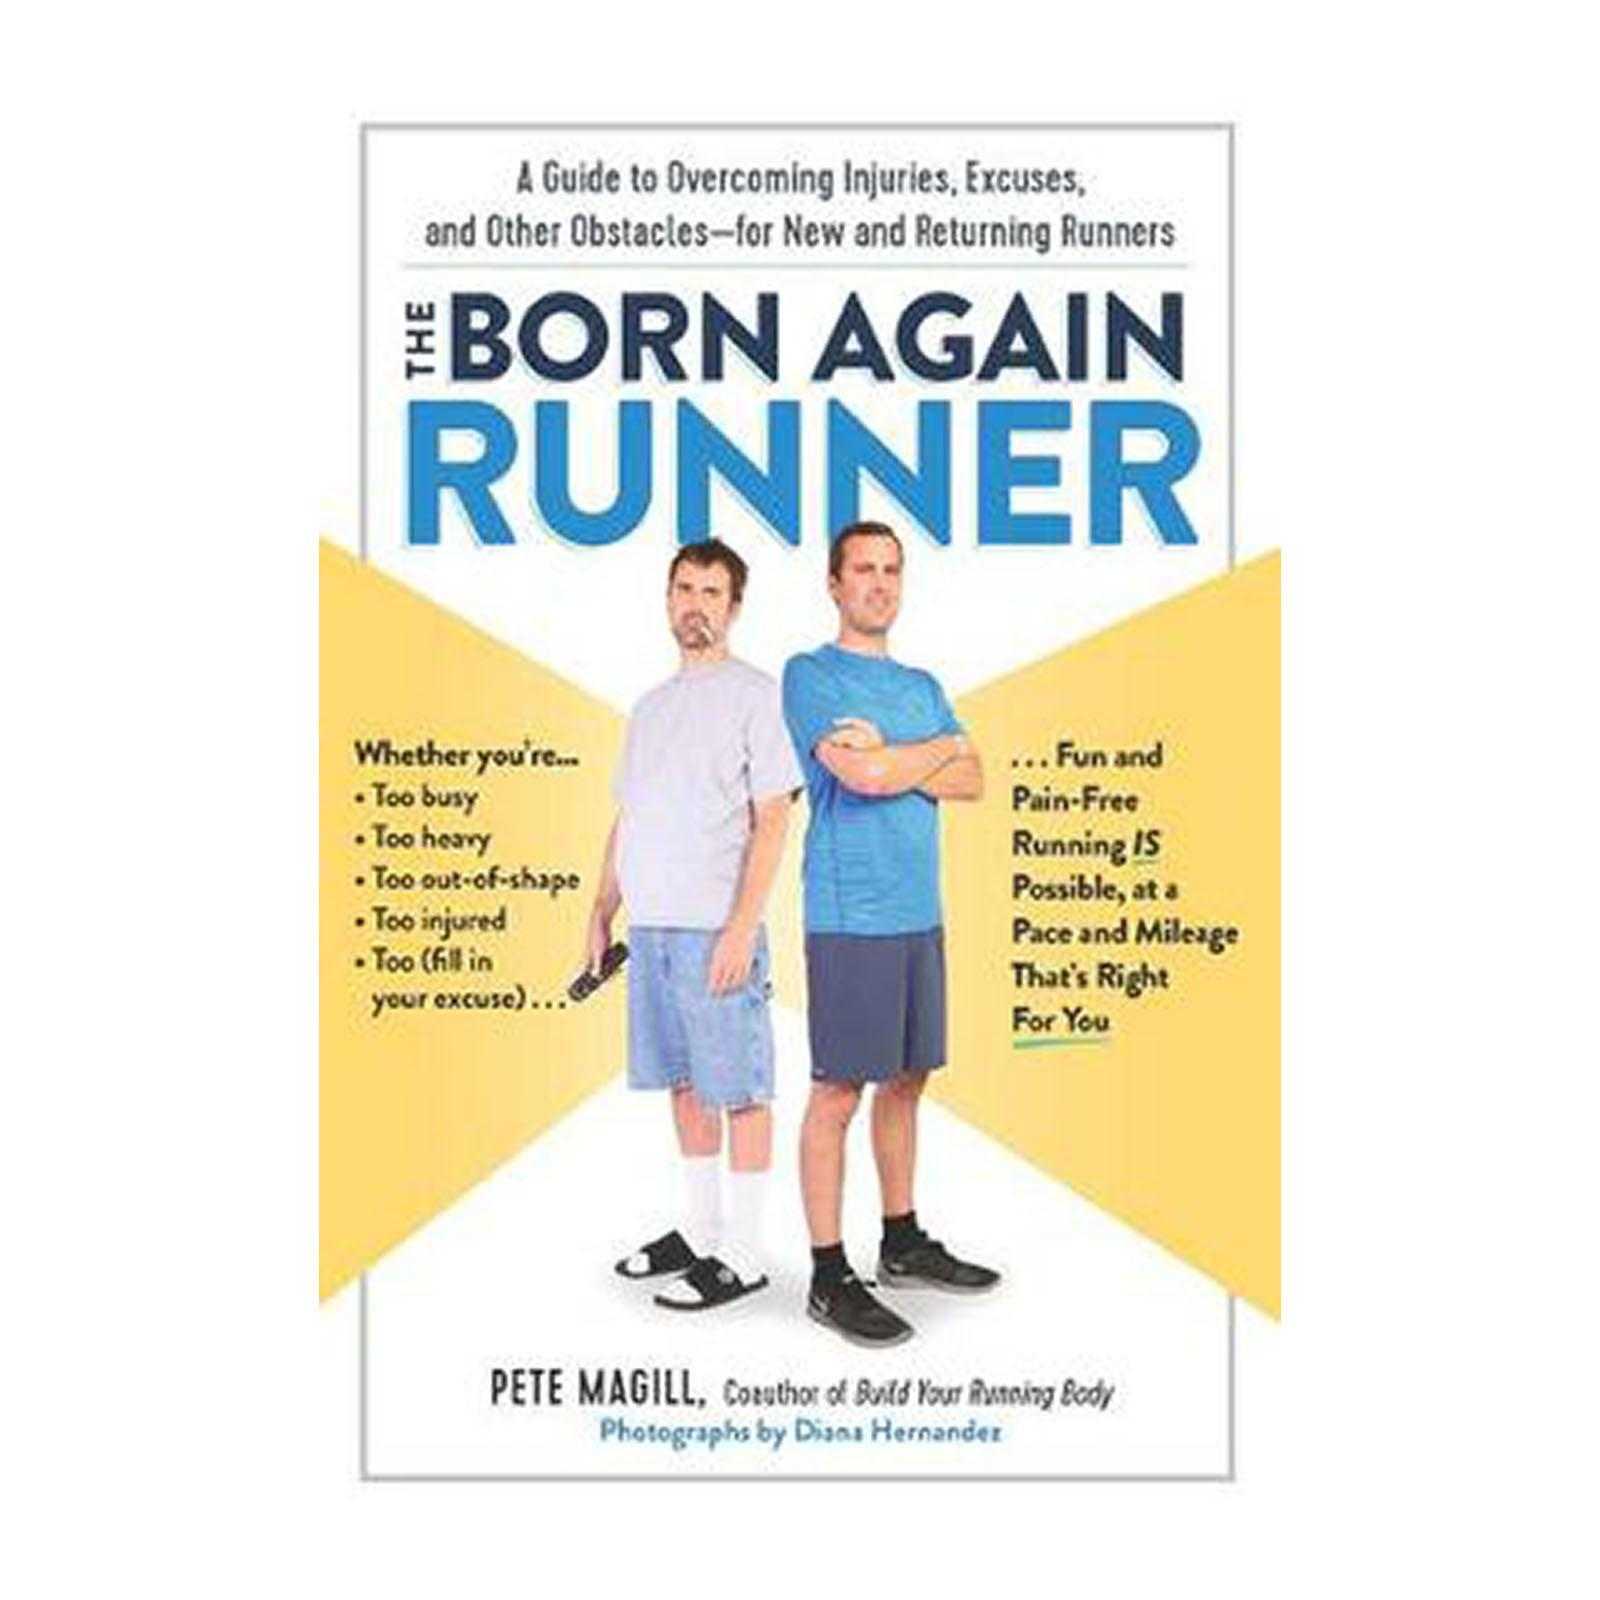 The Born Again Runner (Paperback)